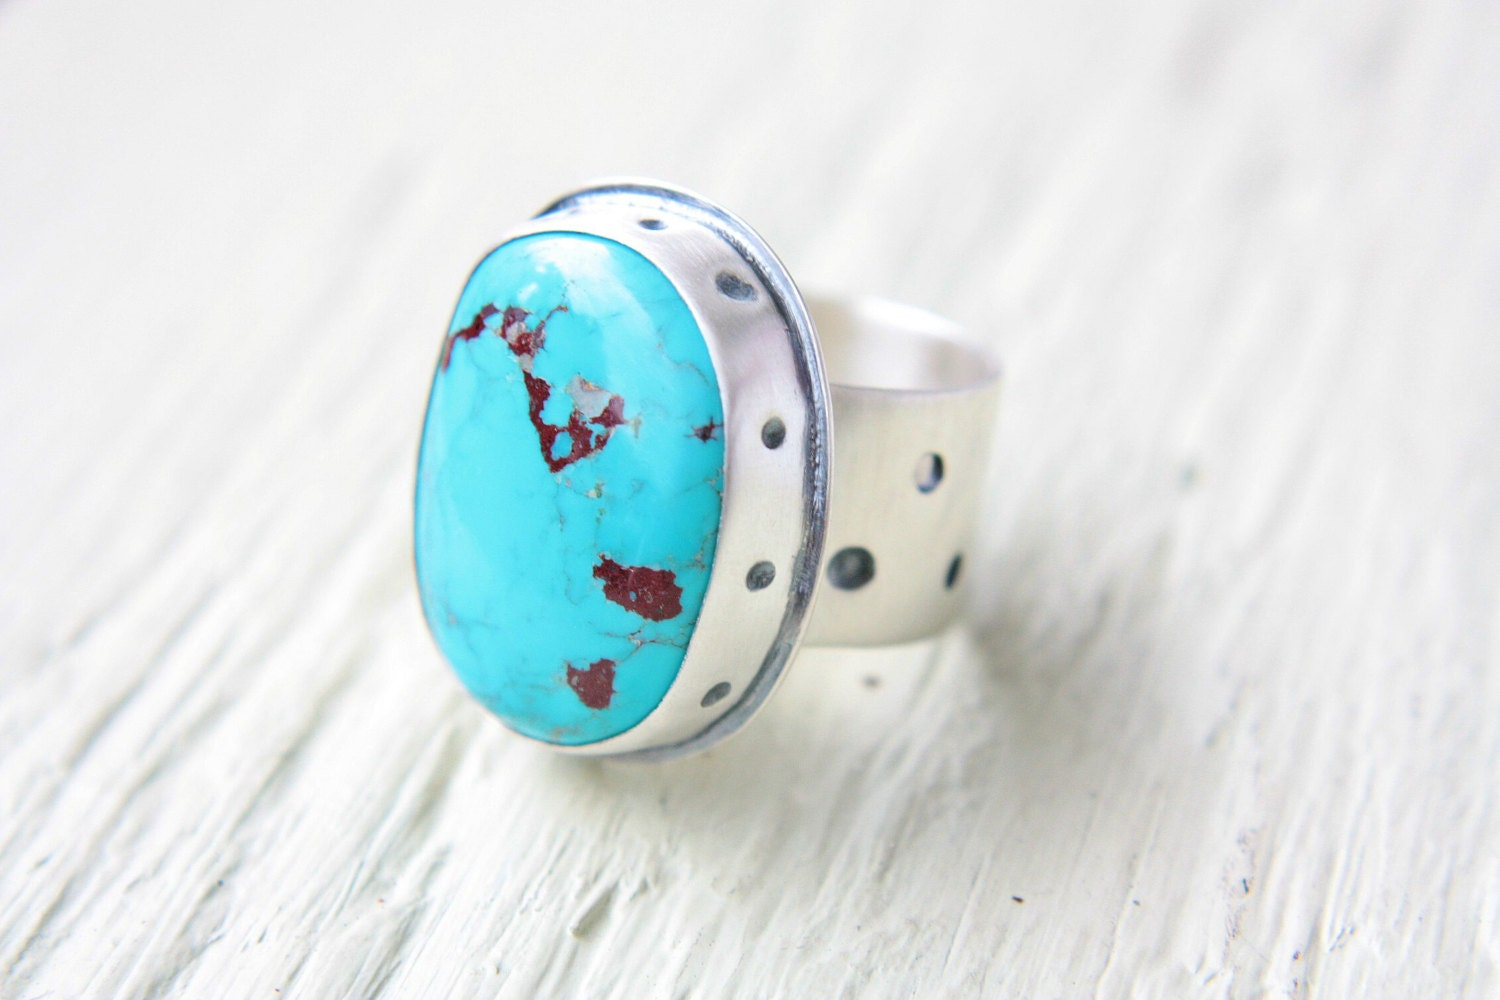 Hopi Warrior Turquoise Ring Sterling Silver Size 8 1/2  Boho Gipsy Bohemian Ring Silversmithed Metalsmithed - ManariDesign